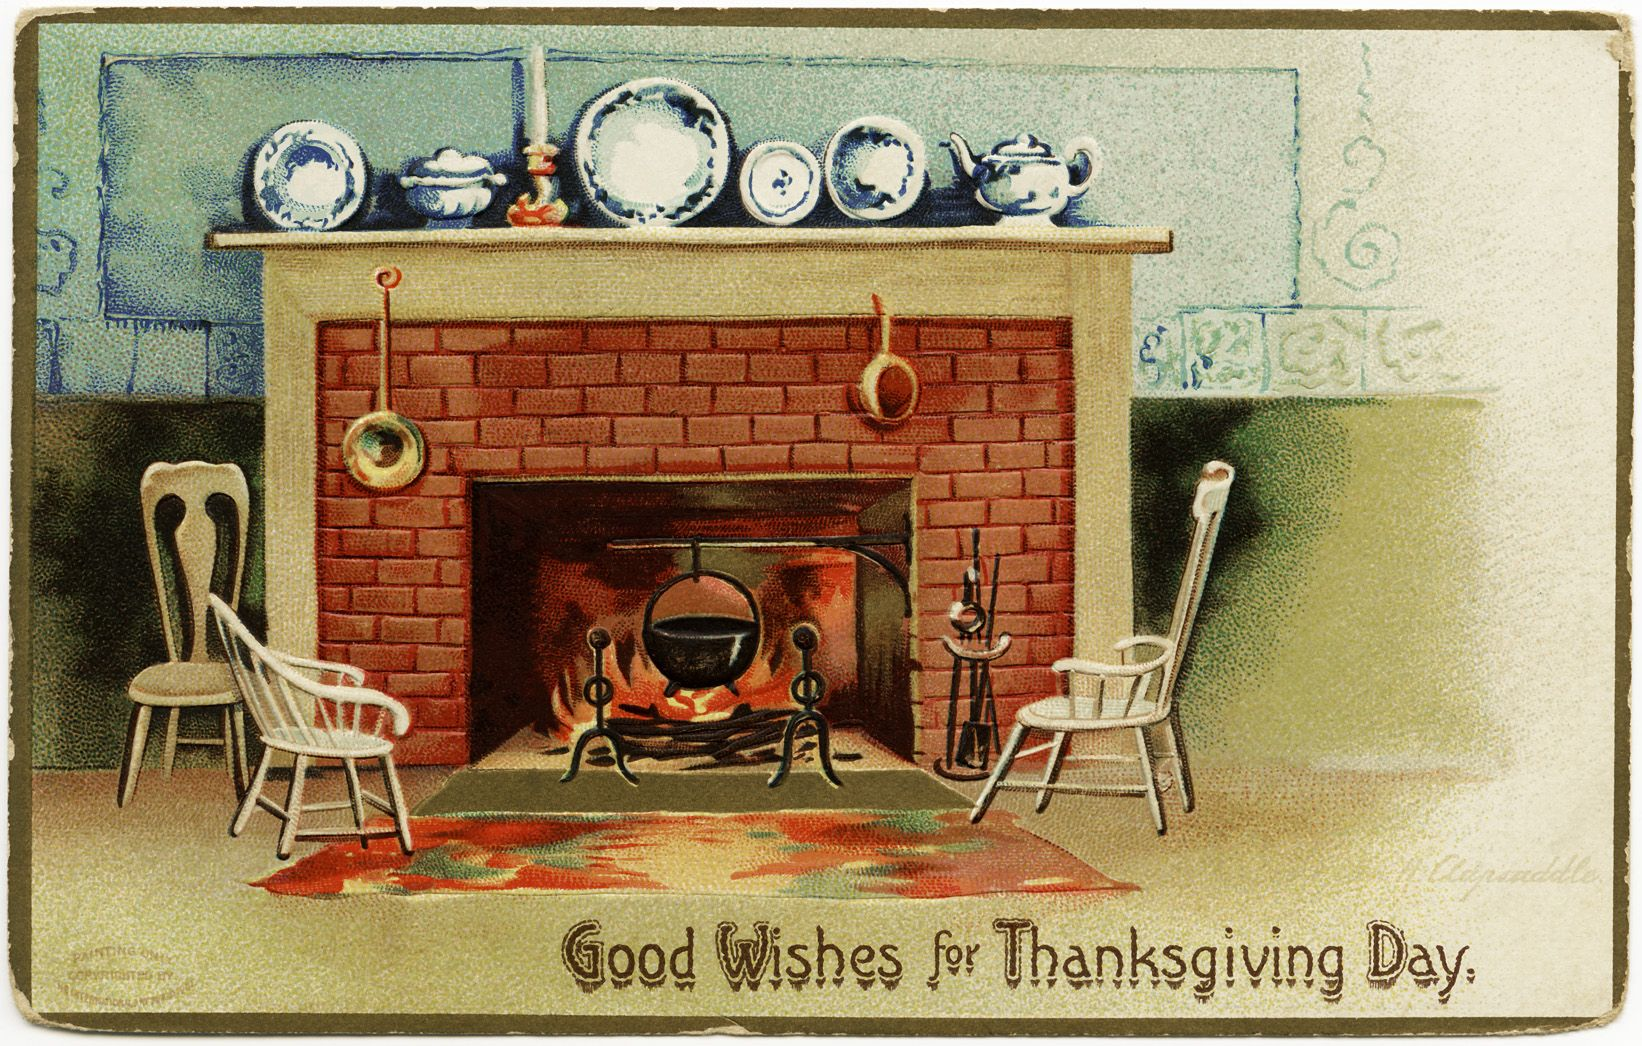 Old Design Shop ~ free digital image: vintage Clapsaddle Thanksgiving postcard